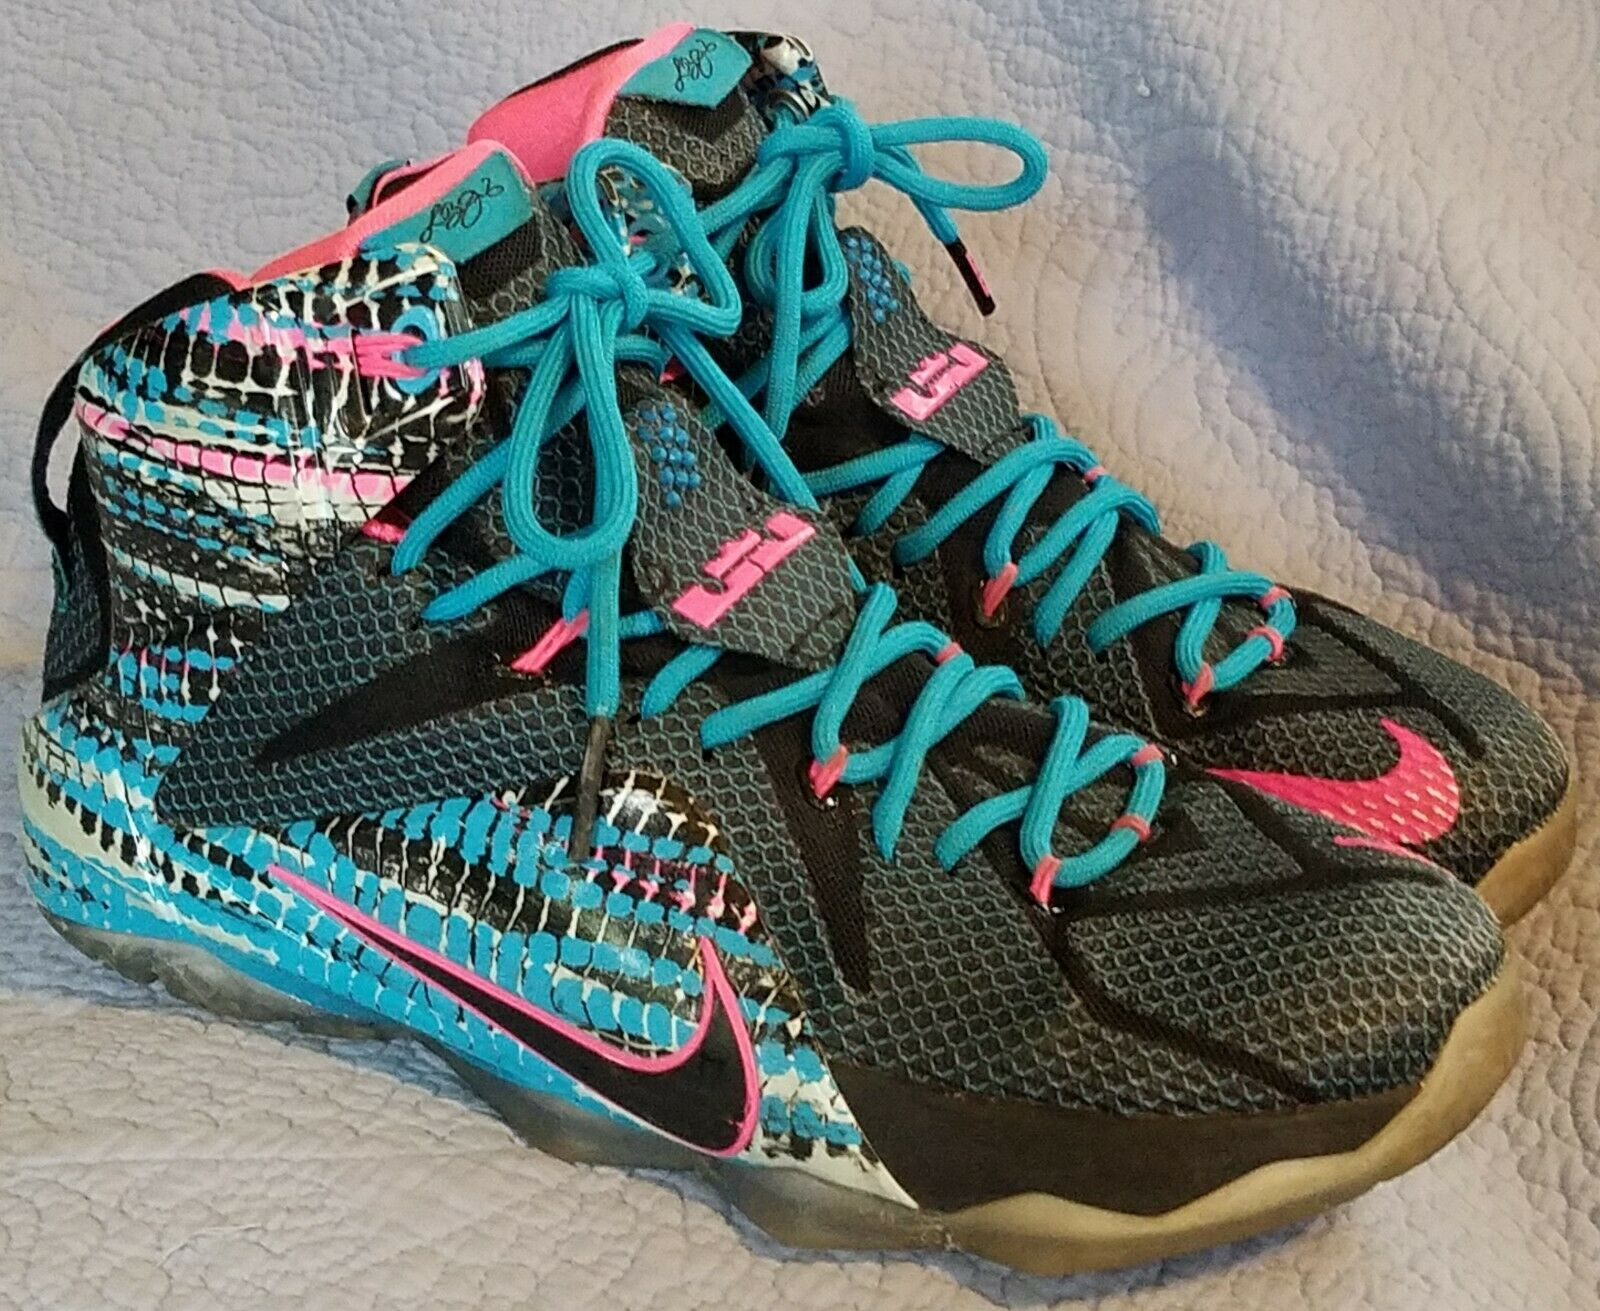 reputable site 077a6 0bb00 Nike Lebron XII 12 Chromosomes Size 9 Black Pink Blue Lagoon 684593-006 Mens